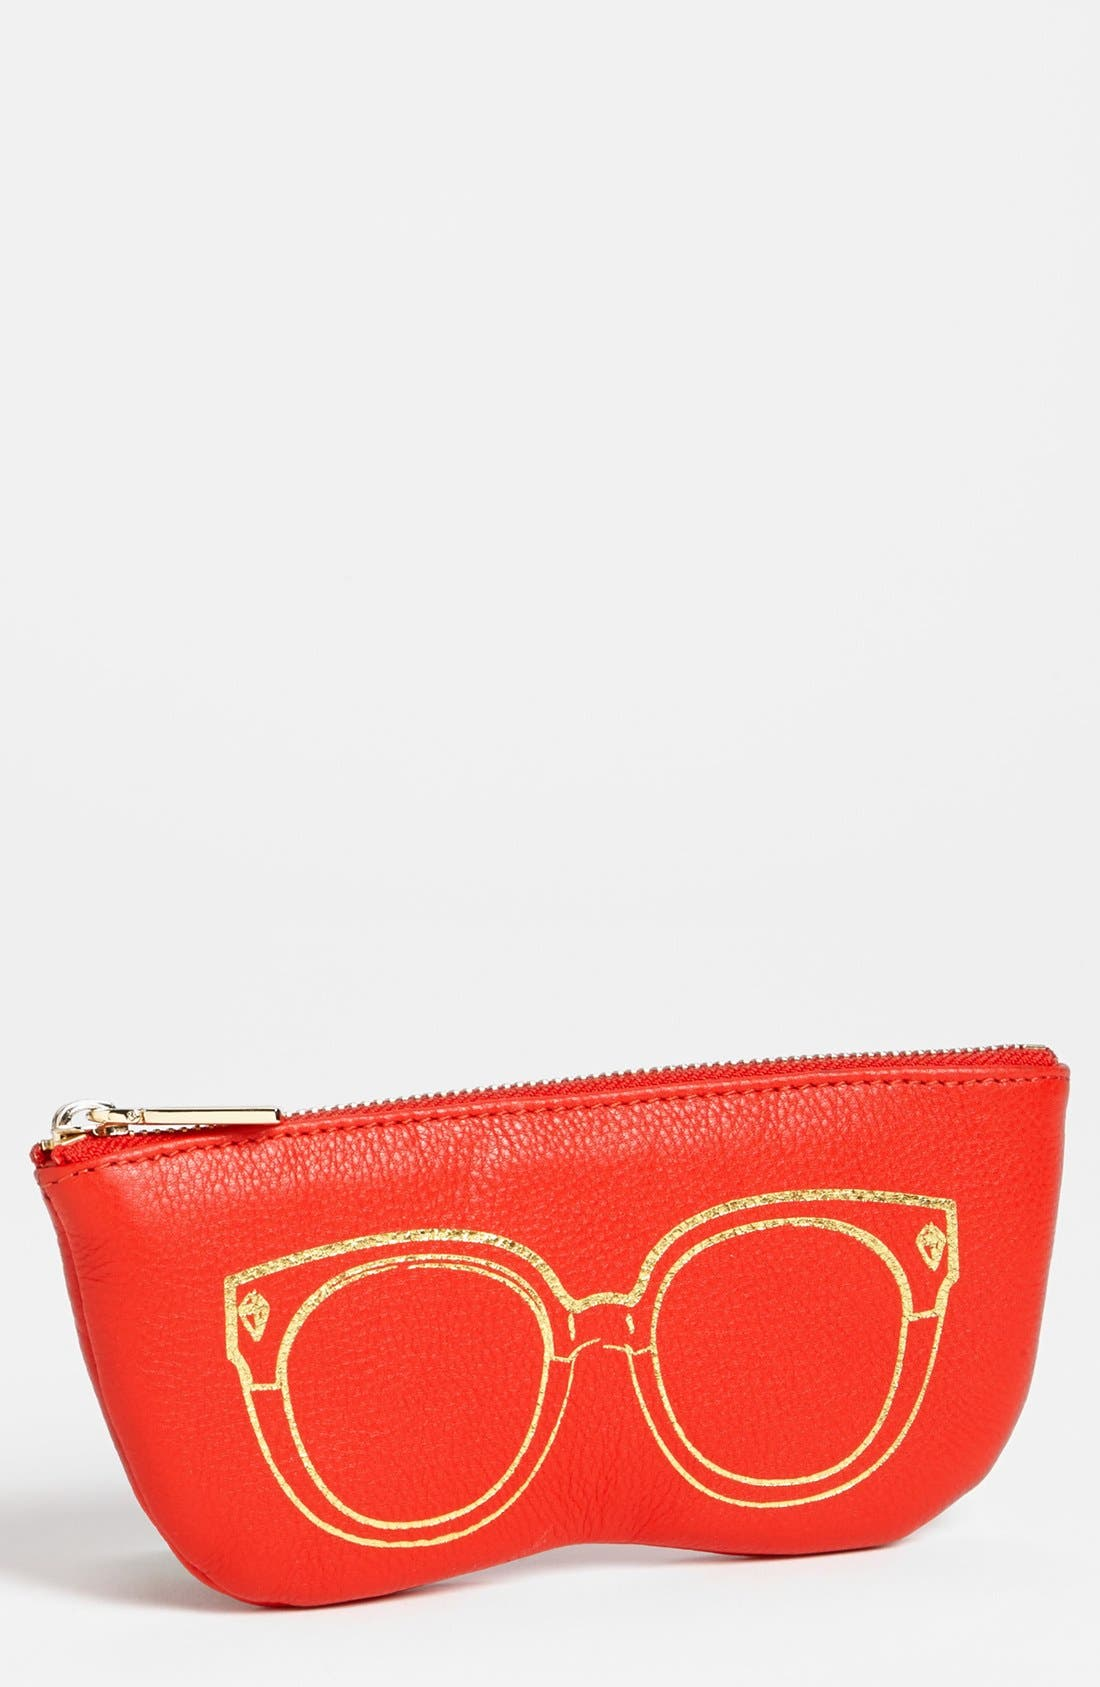 Main Image - Rebecca Minkoff Leather Sunglasses Case